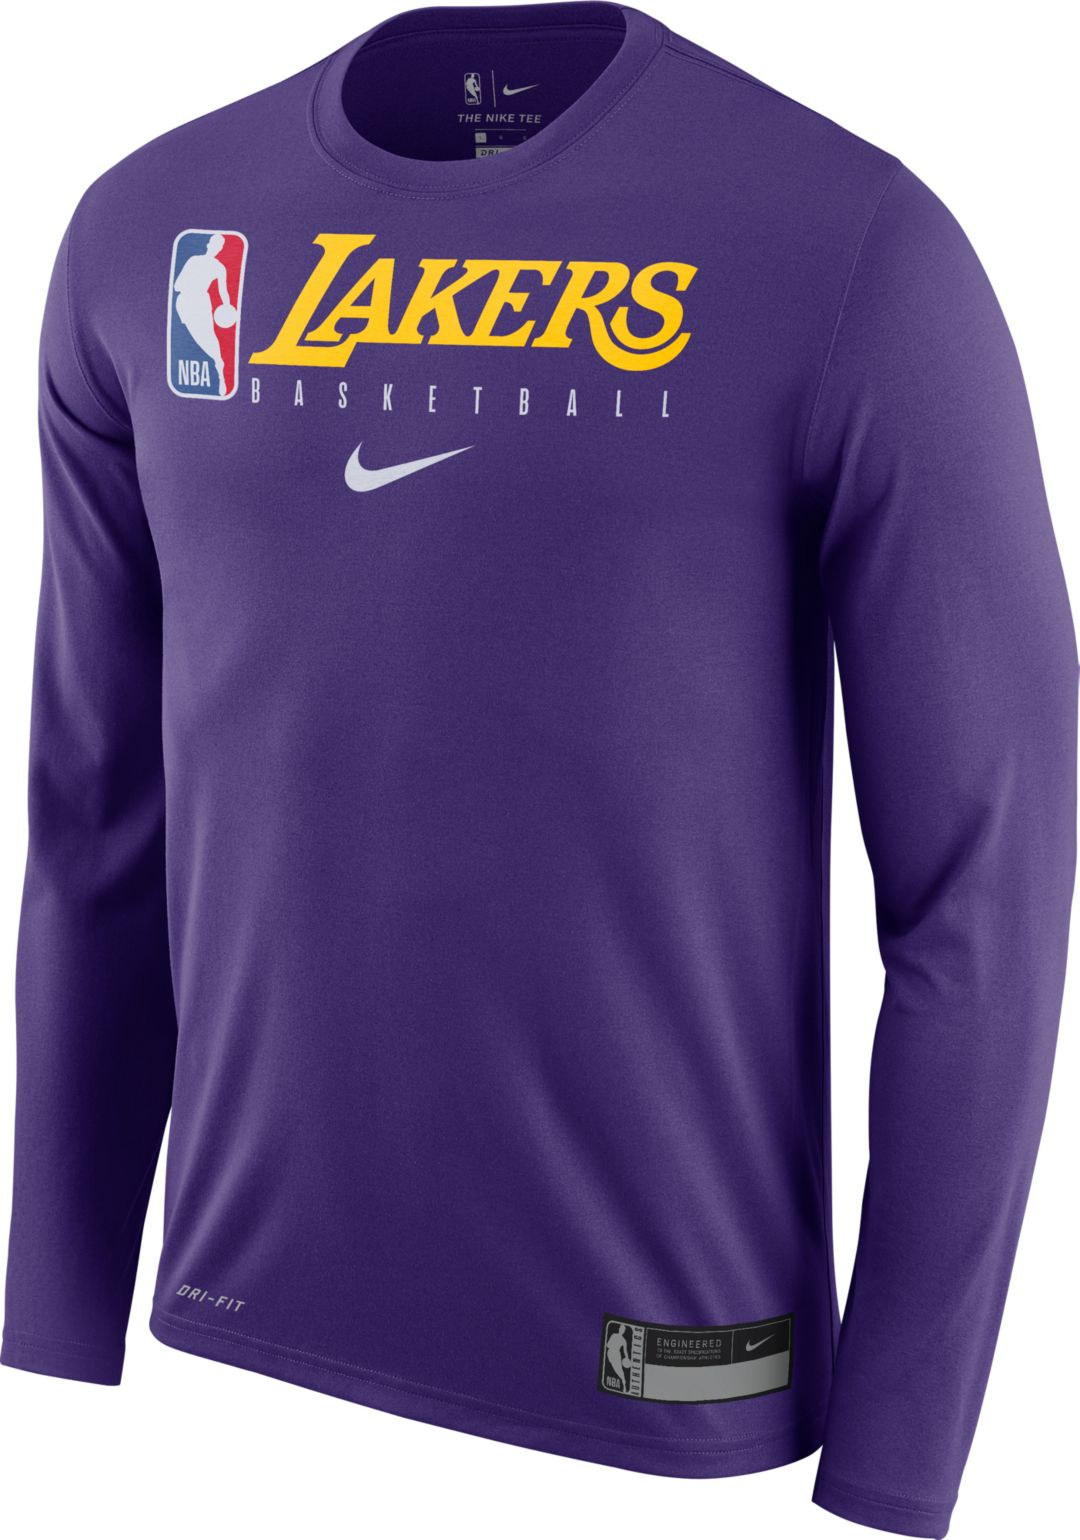 the latest e54a4 29729 Nike Men's Los Angeles Lakers Dri-FIT Practice Long Sleeve Shirt